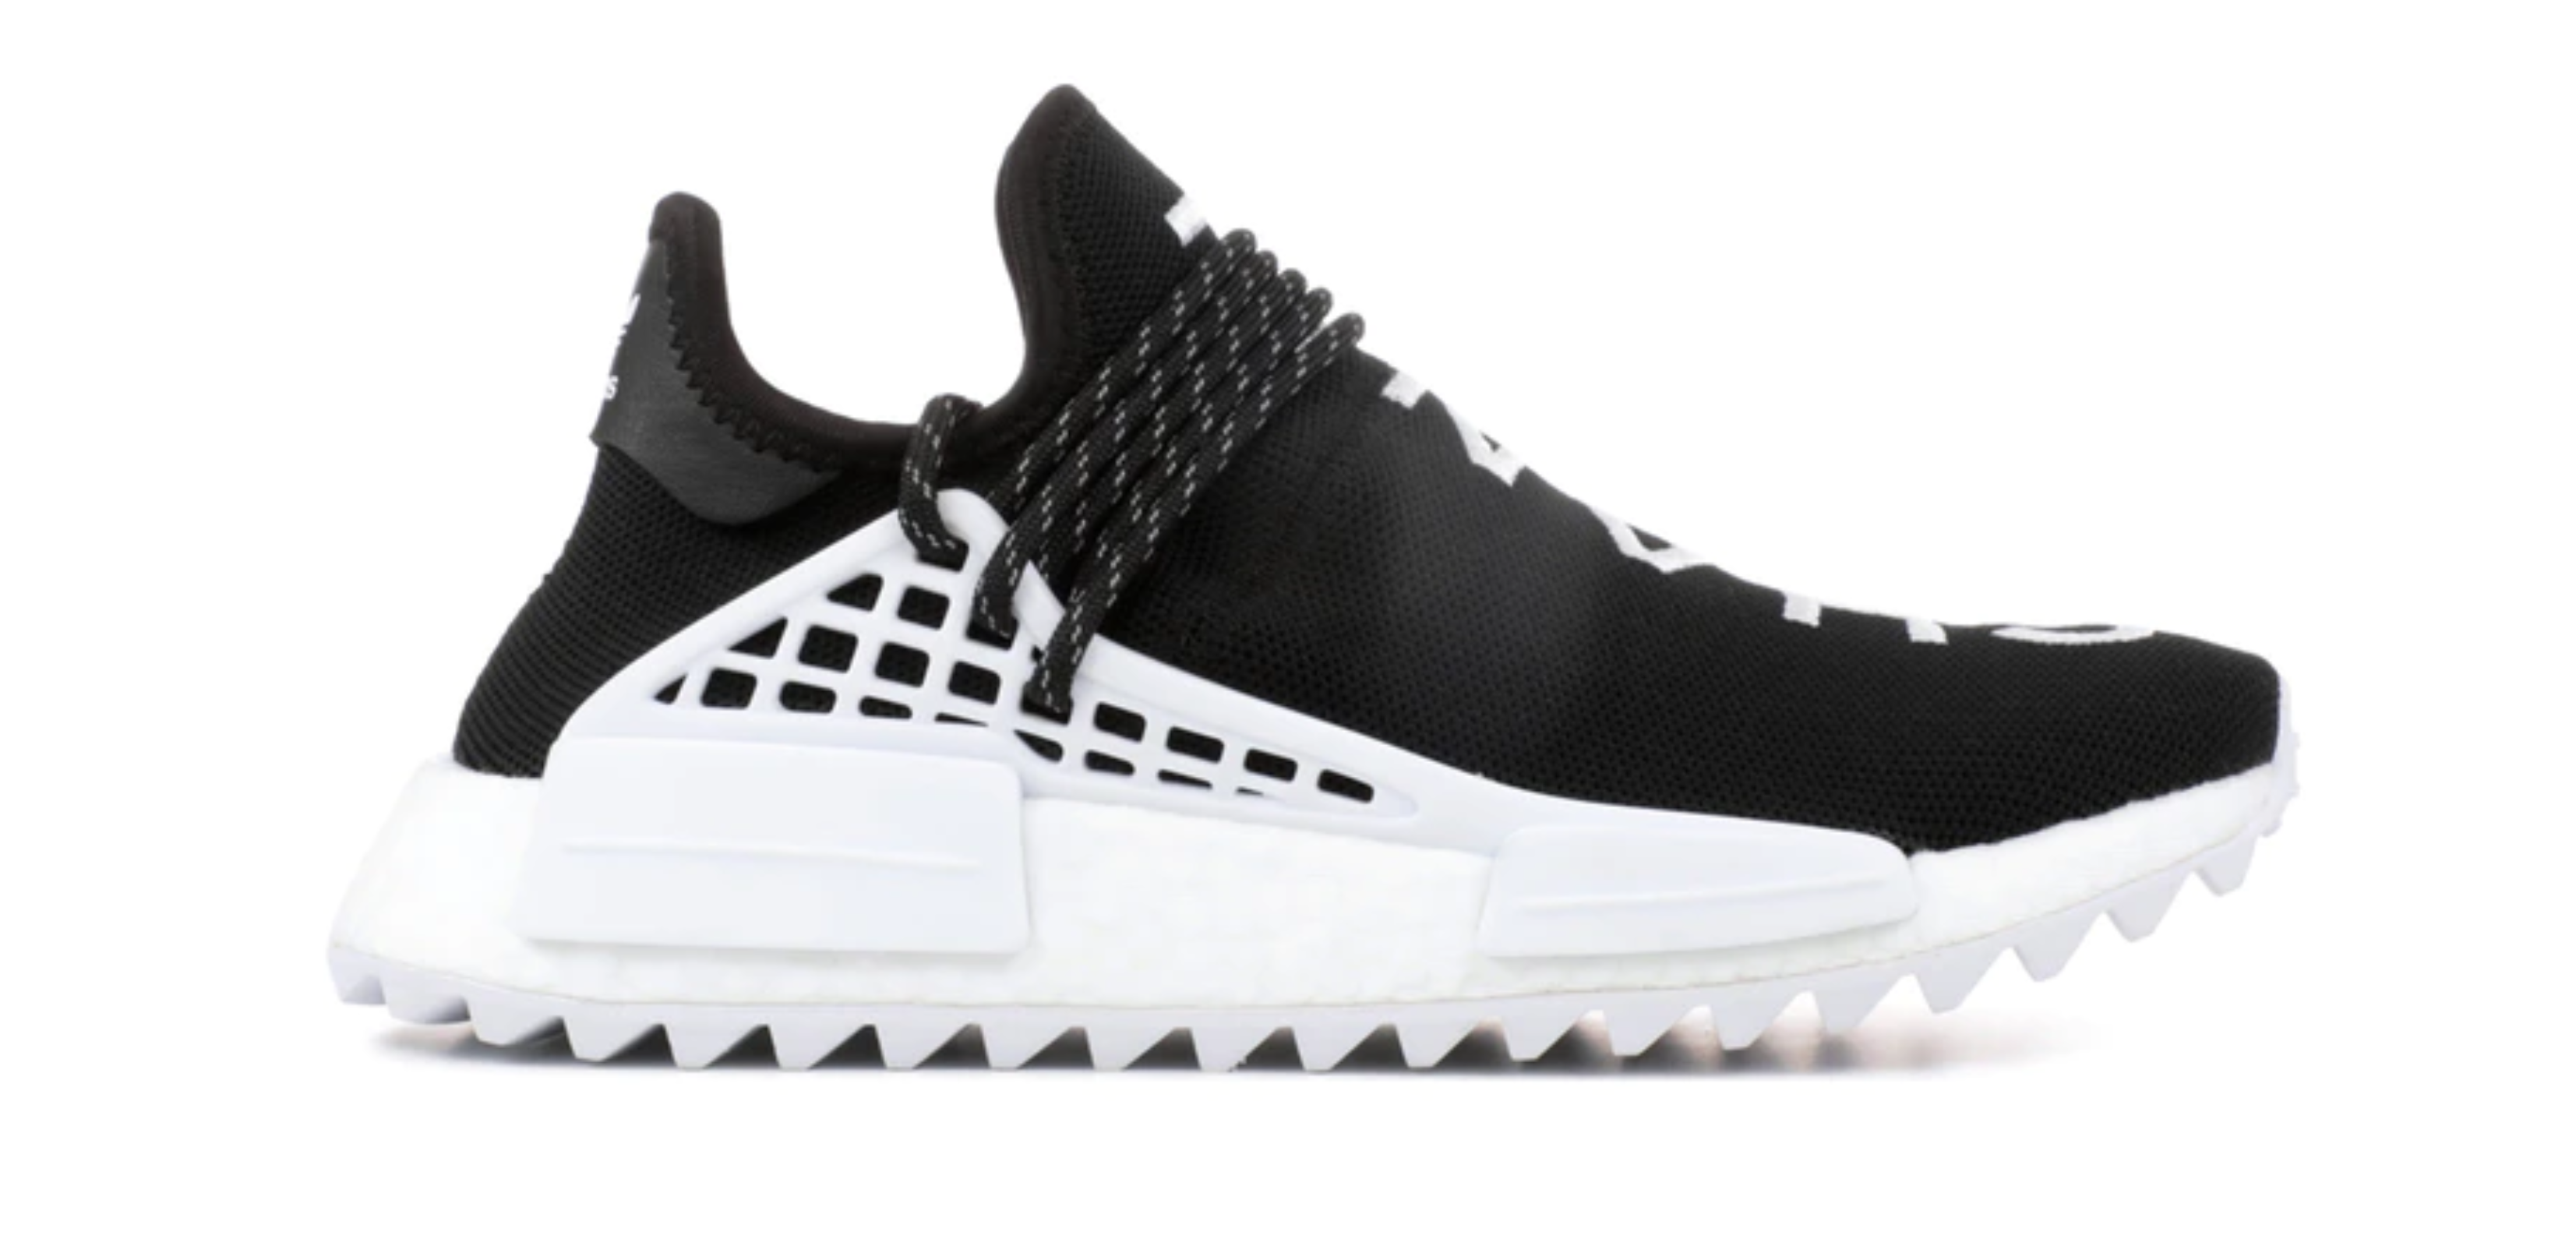 These are the 4 most expensive sneakers